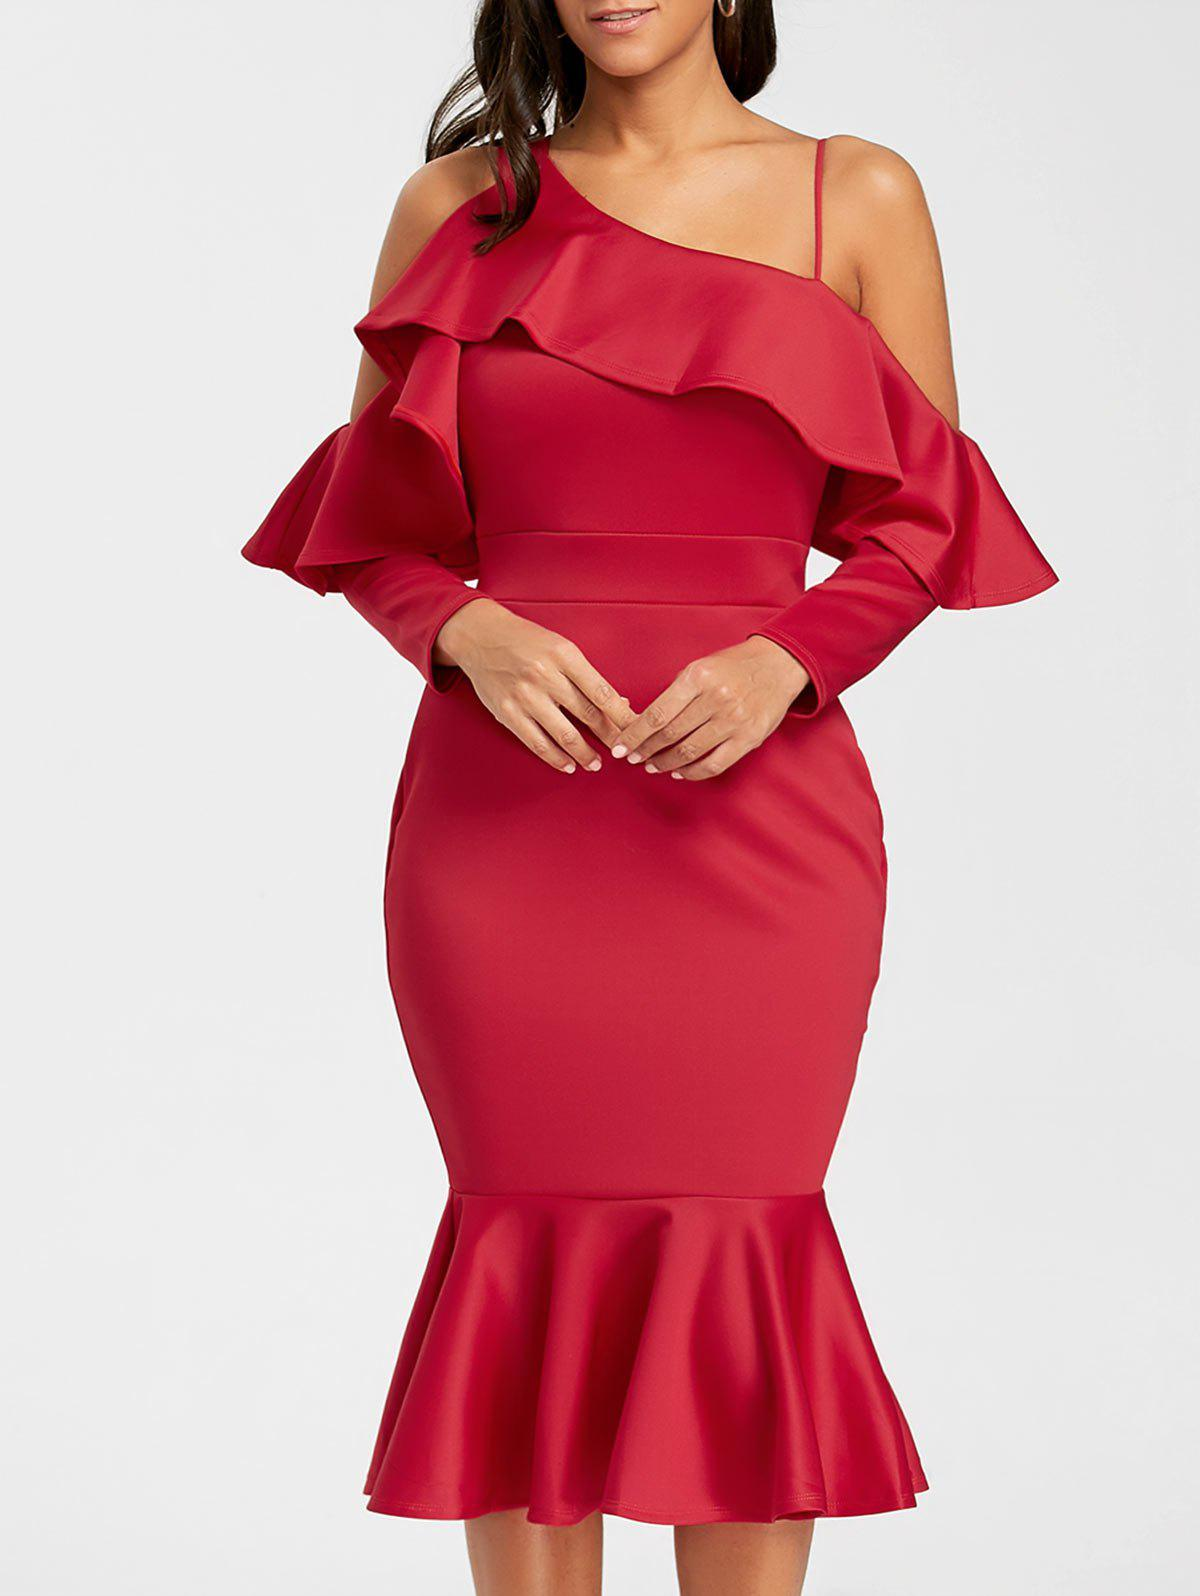 Long Sleeve Open Shoulder Midi Mermaid DressWOMEN<br><br>Size: L; Color: RED; Style: Brief; Material: Polyester,Spandex; Silhouette: Bodycon; Dresses Length: Mid-Calf; Neckline: Skew Collar; Sleeve Length: Long Sleeves; Embellishment: Flounce; Pattern Type: Solid Color; With Belt: No; Season: Fall,Spring; Weight: 0.6100kg; Package Contents: 1 x Dress;